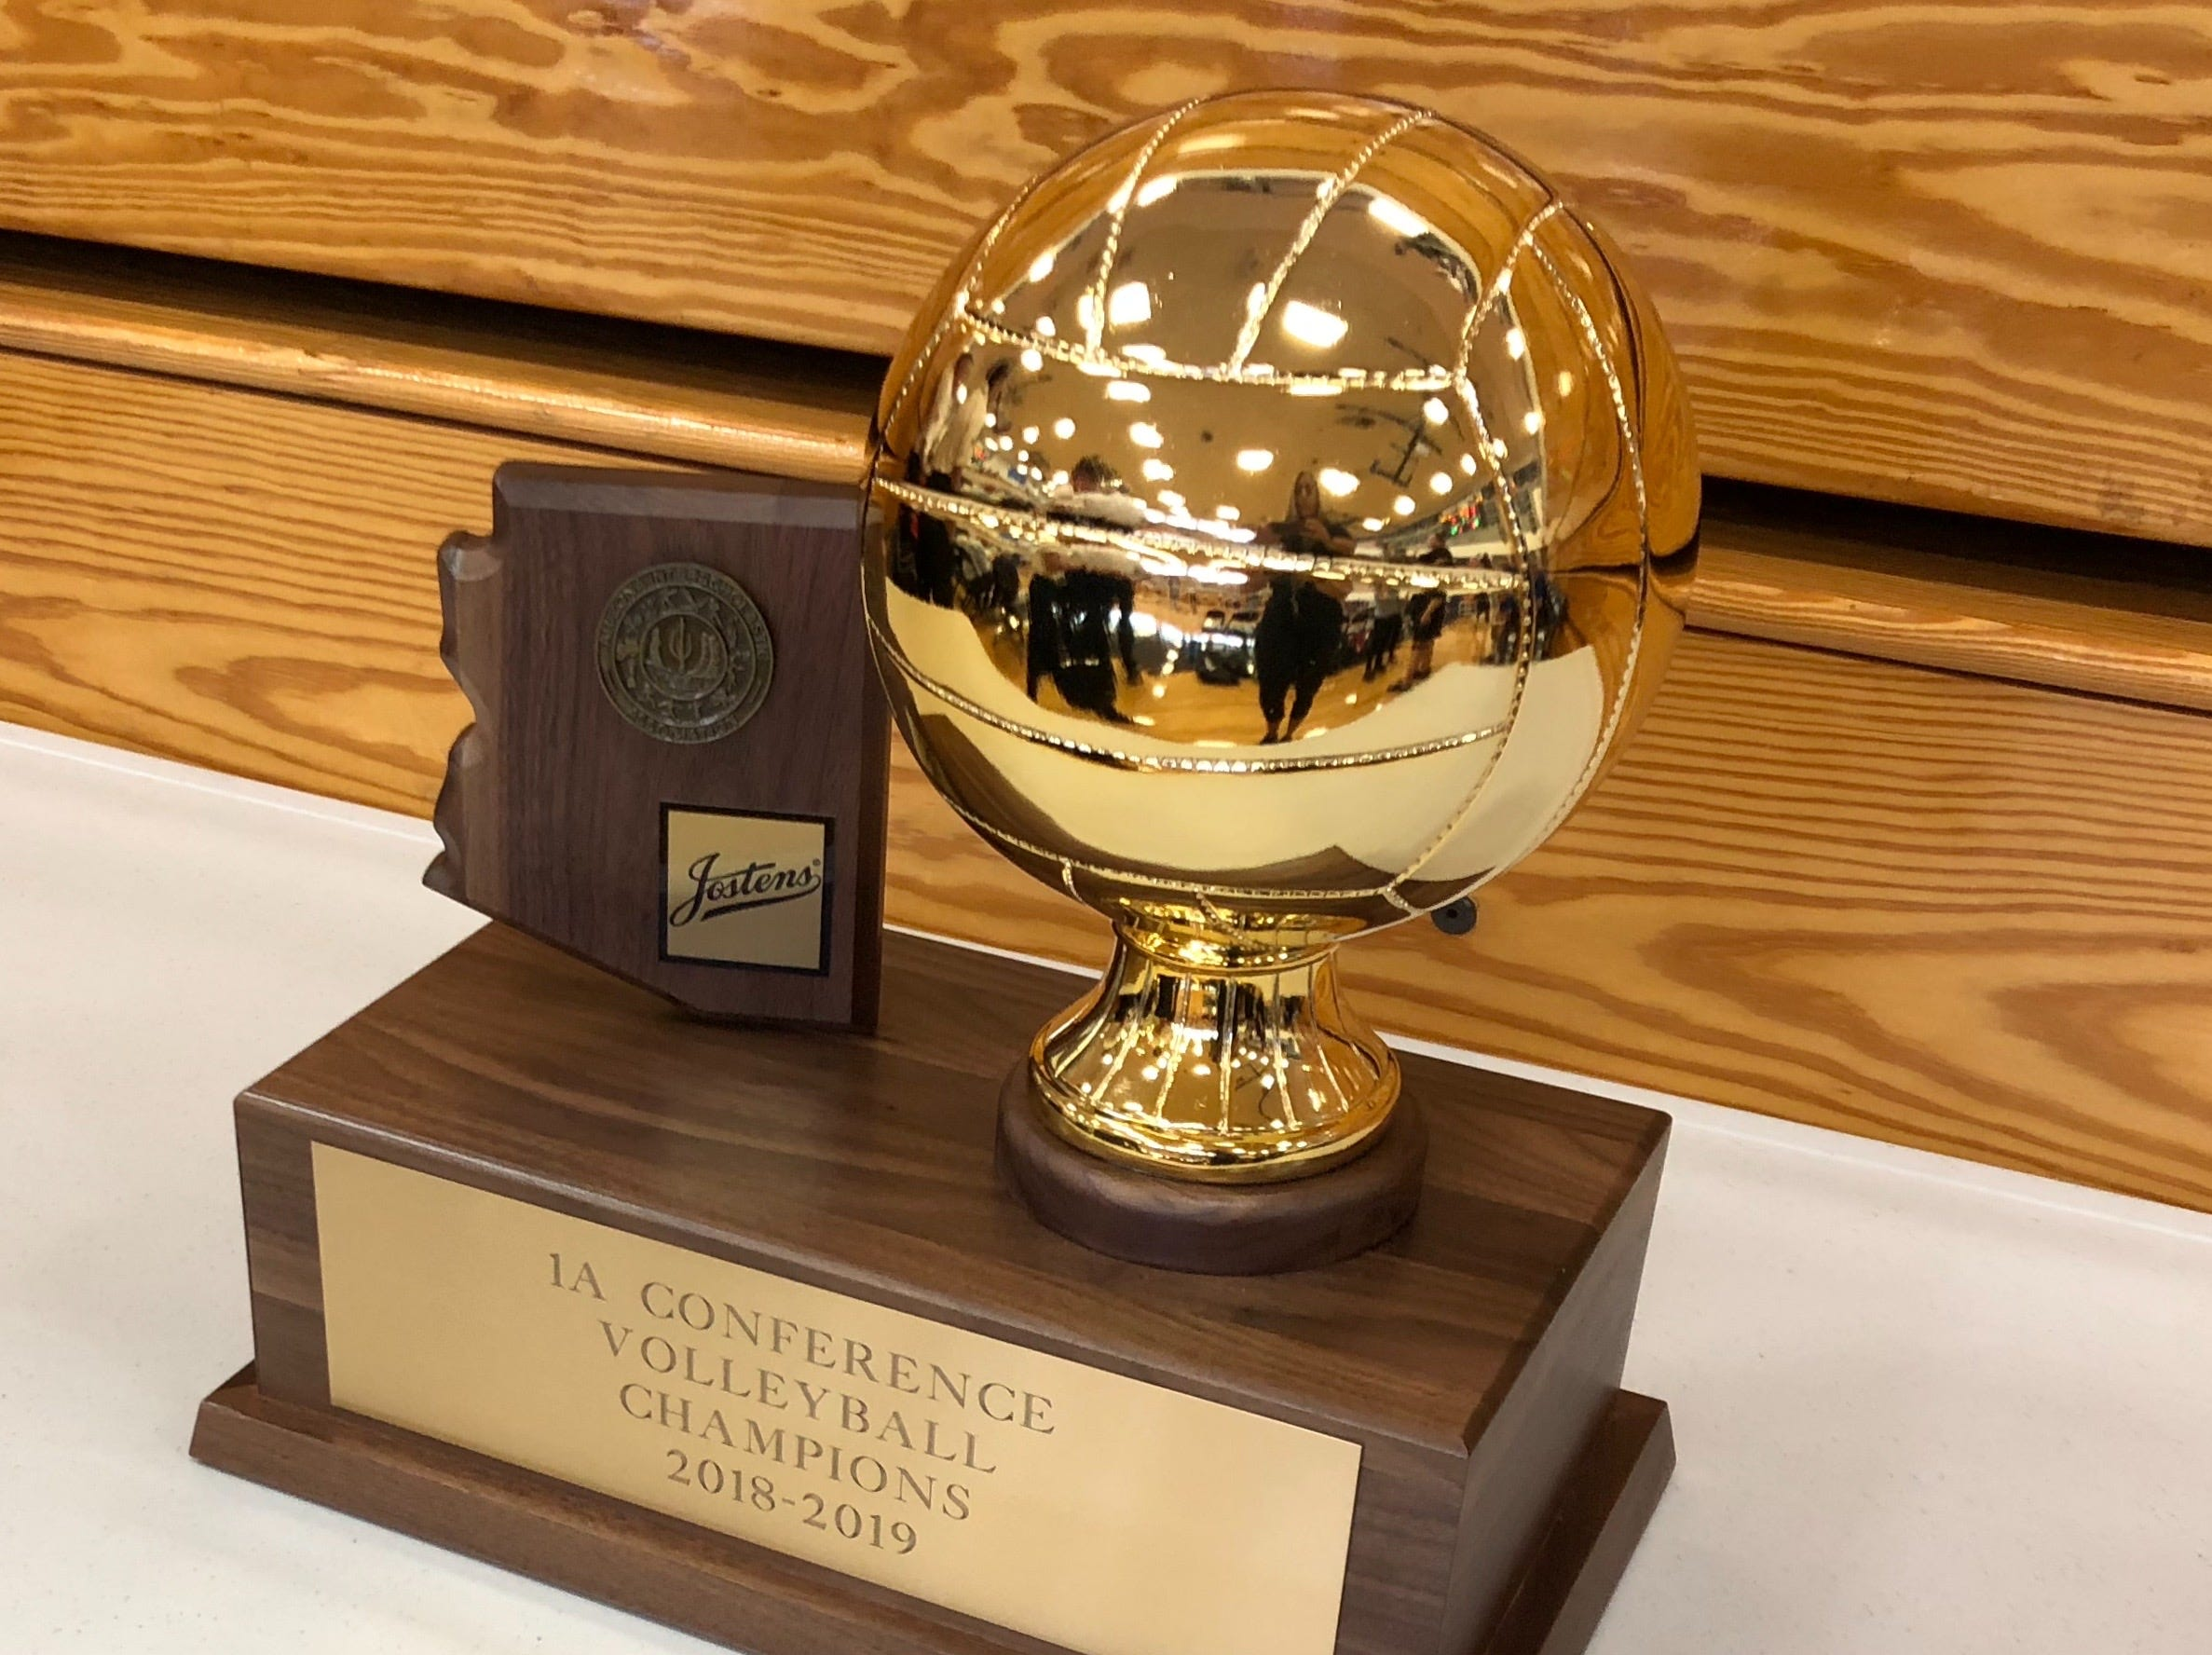 The 1A volleyball championship trophy.